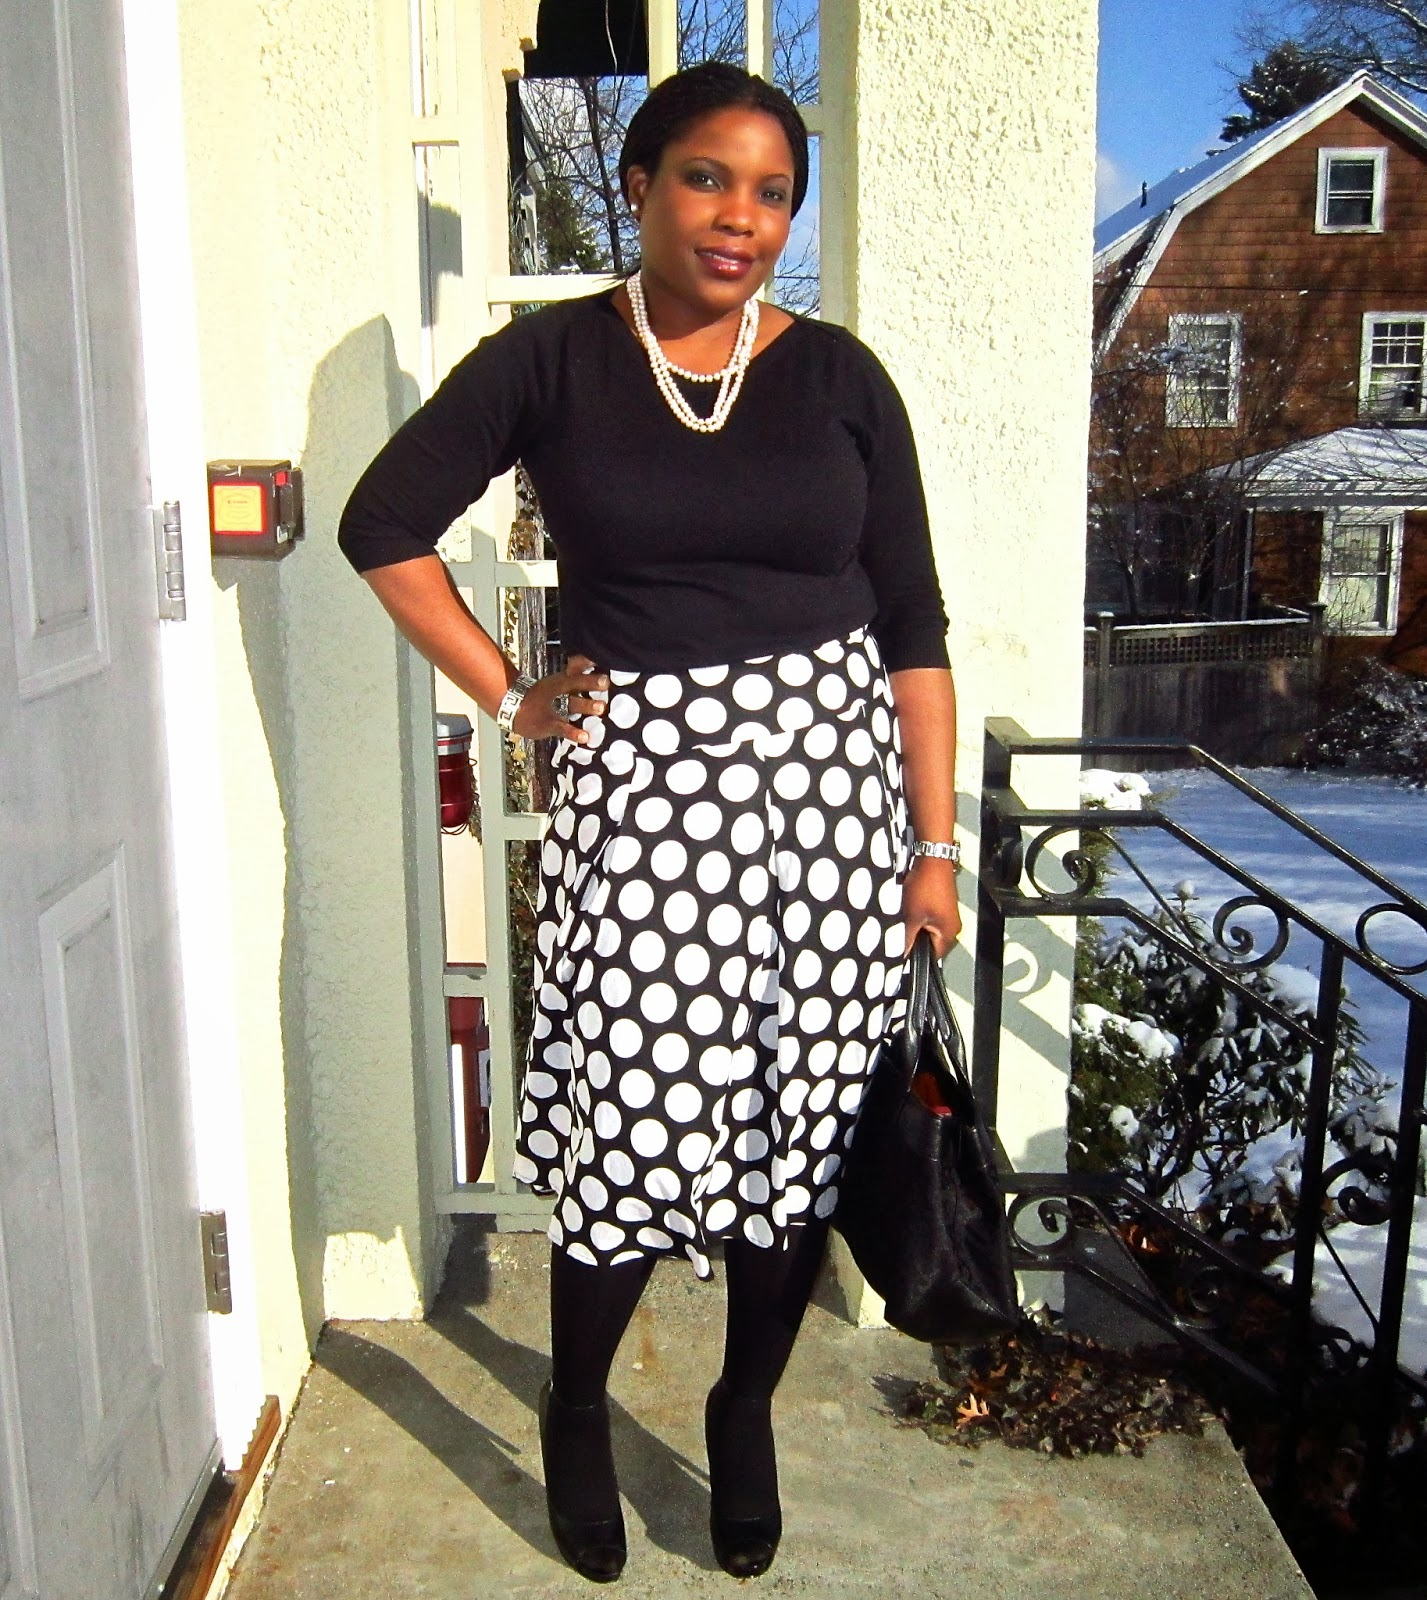 Polka dot skirt, sandals with tights, tommy hilfiger bag, long pearl necklace